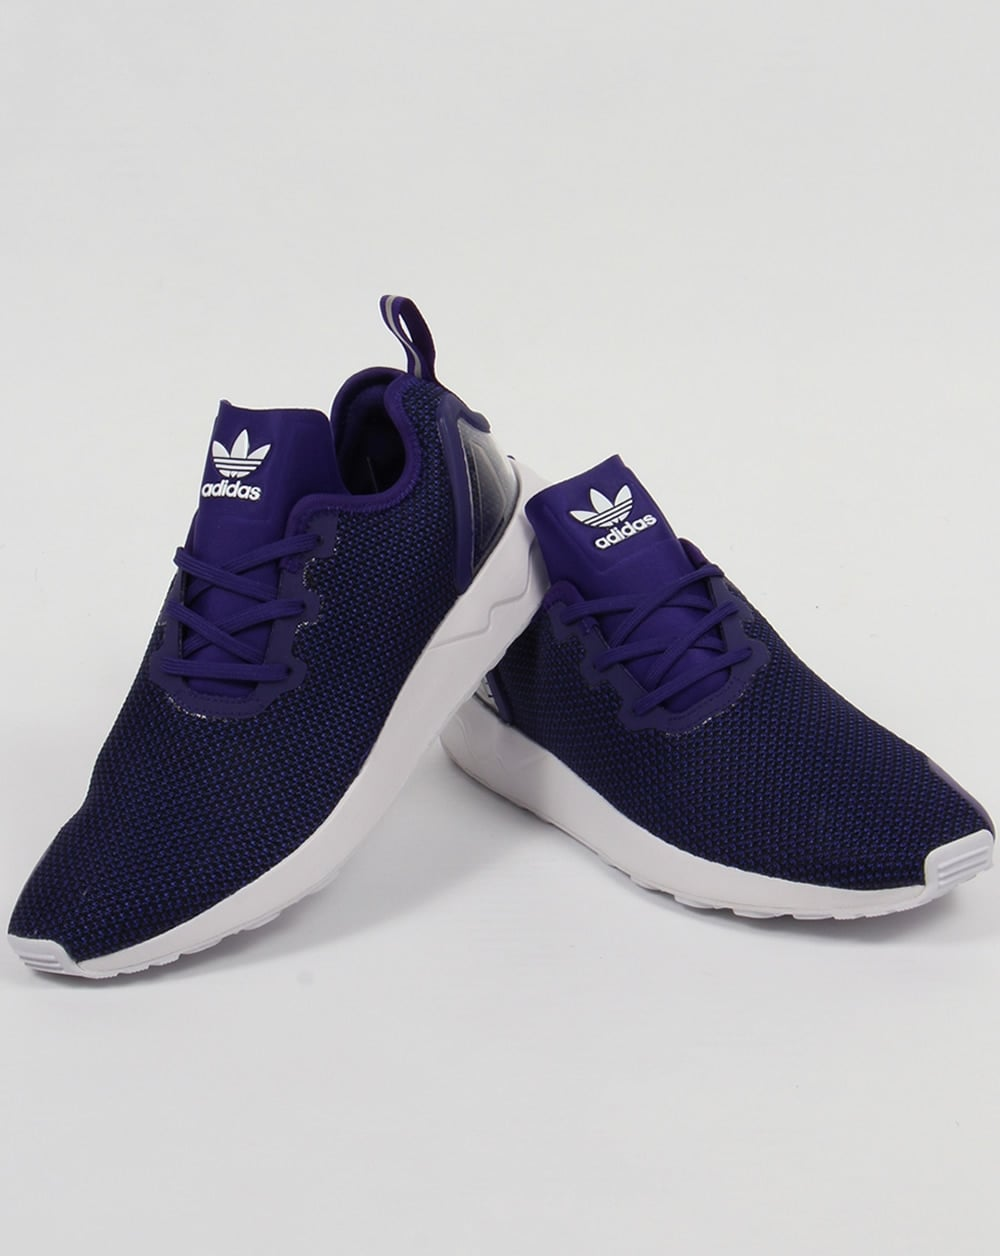 hot sale online aa31c b5b2b Adidas ZX Flux Racer Asym Trainers Purple/Black/White